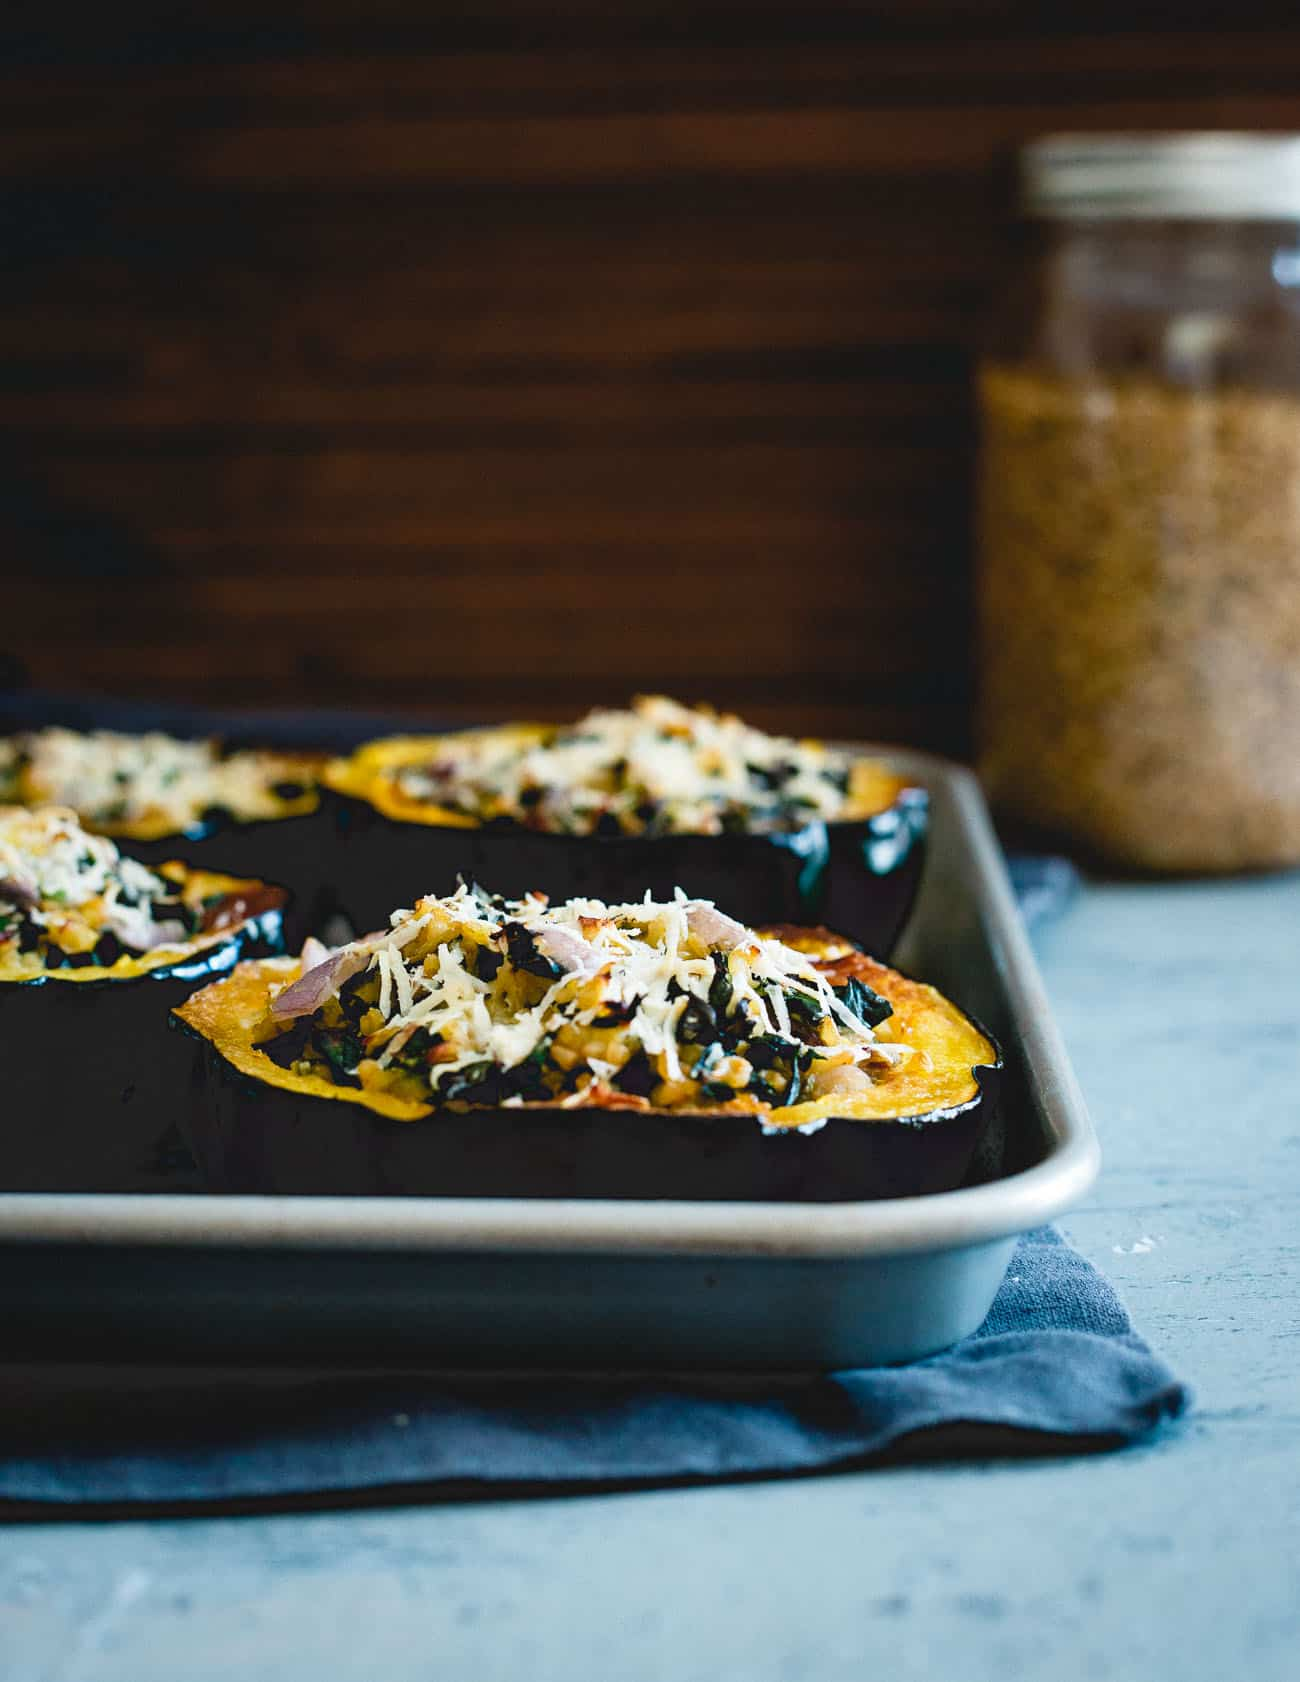 These twice baked acorn squash are a lovely, hearty fall dish that's plenty filling on its own or perfect as a side.